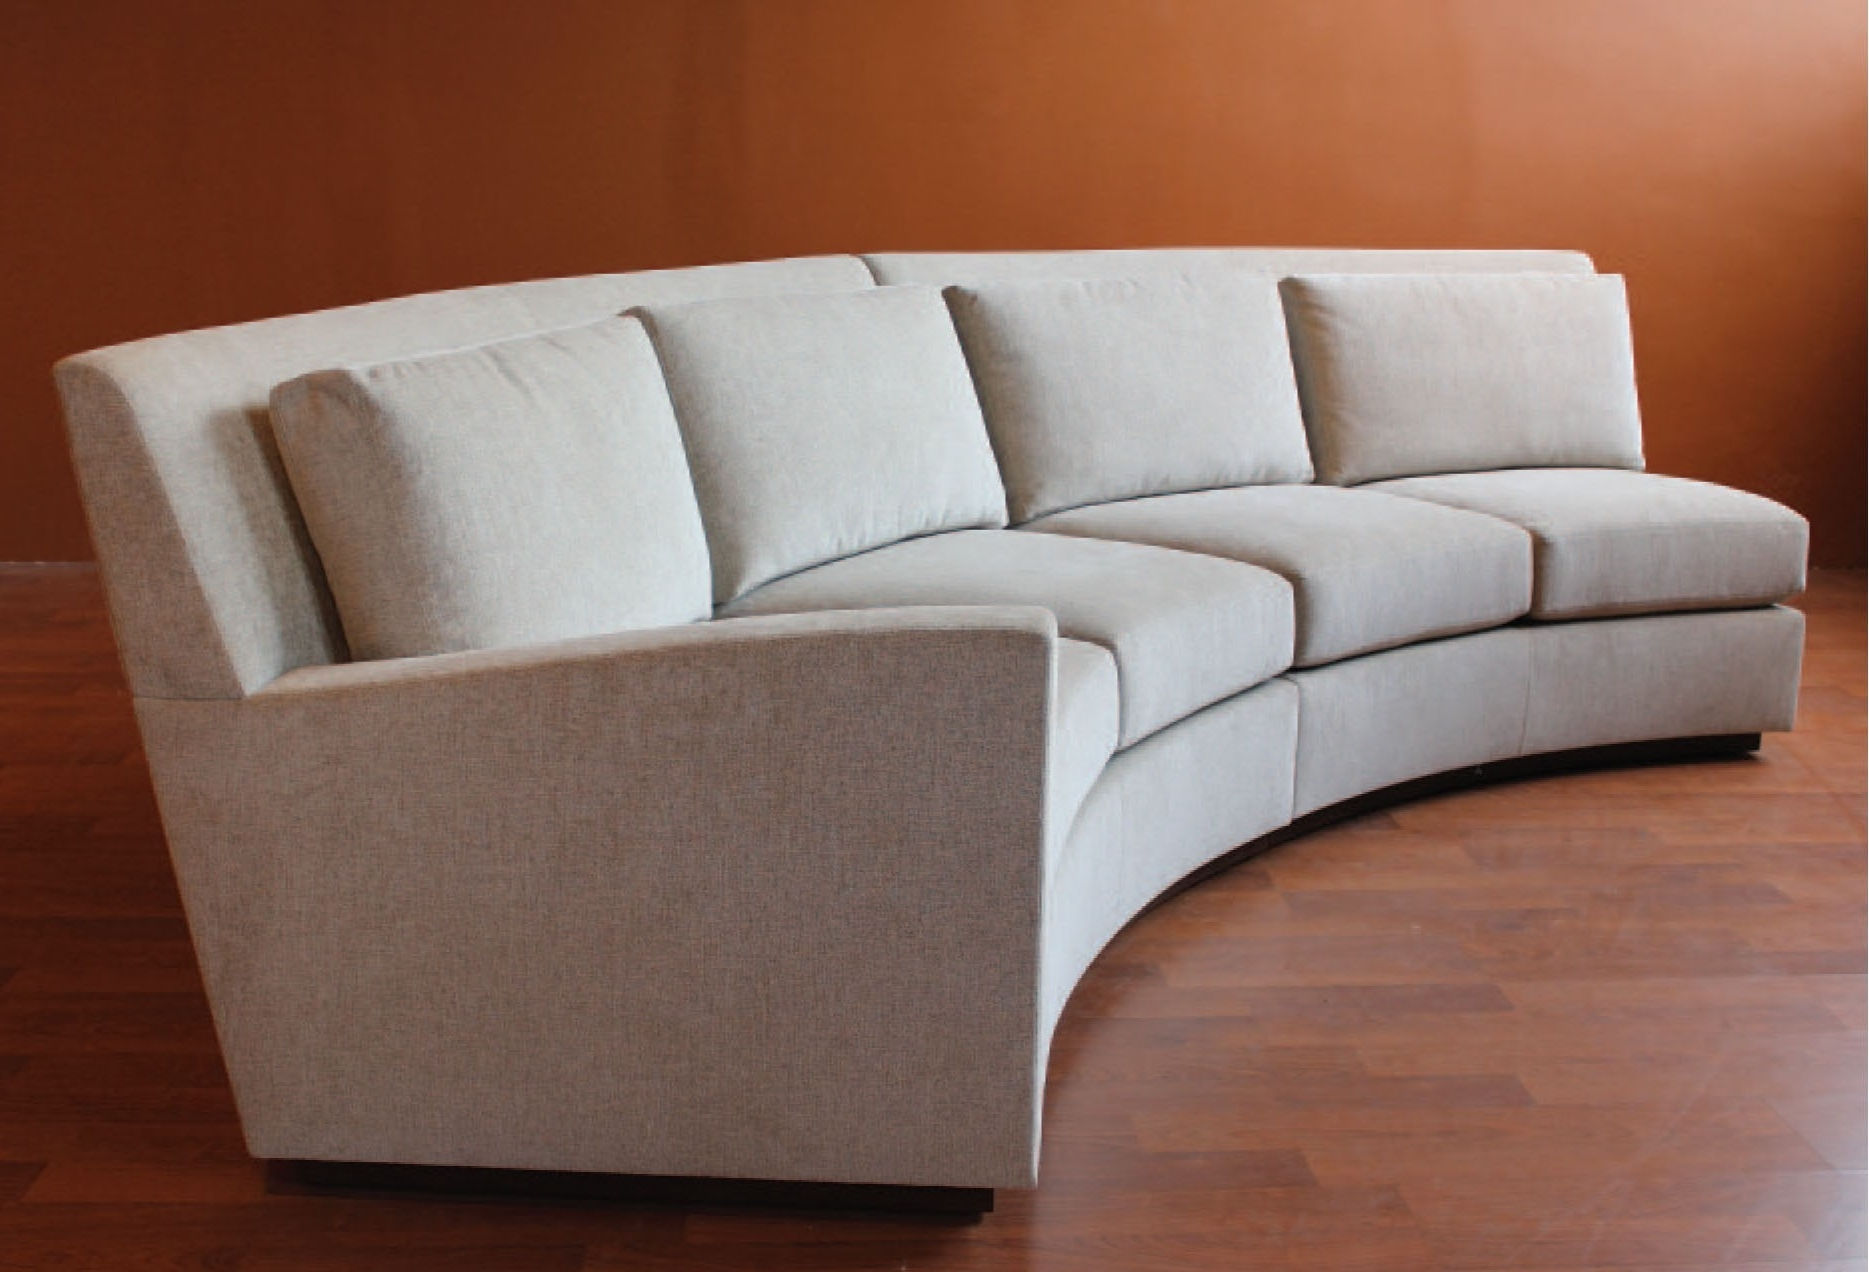 Modern Curved Sofa With Sectional Circular Sofas Round Sectionals Within 2017 Rounded Sofas (View 3 of 15)